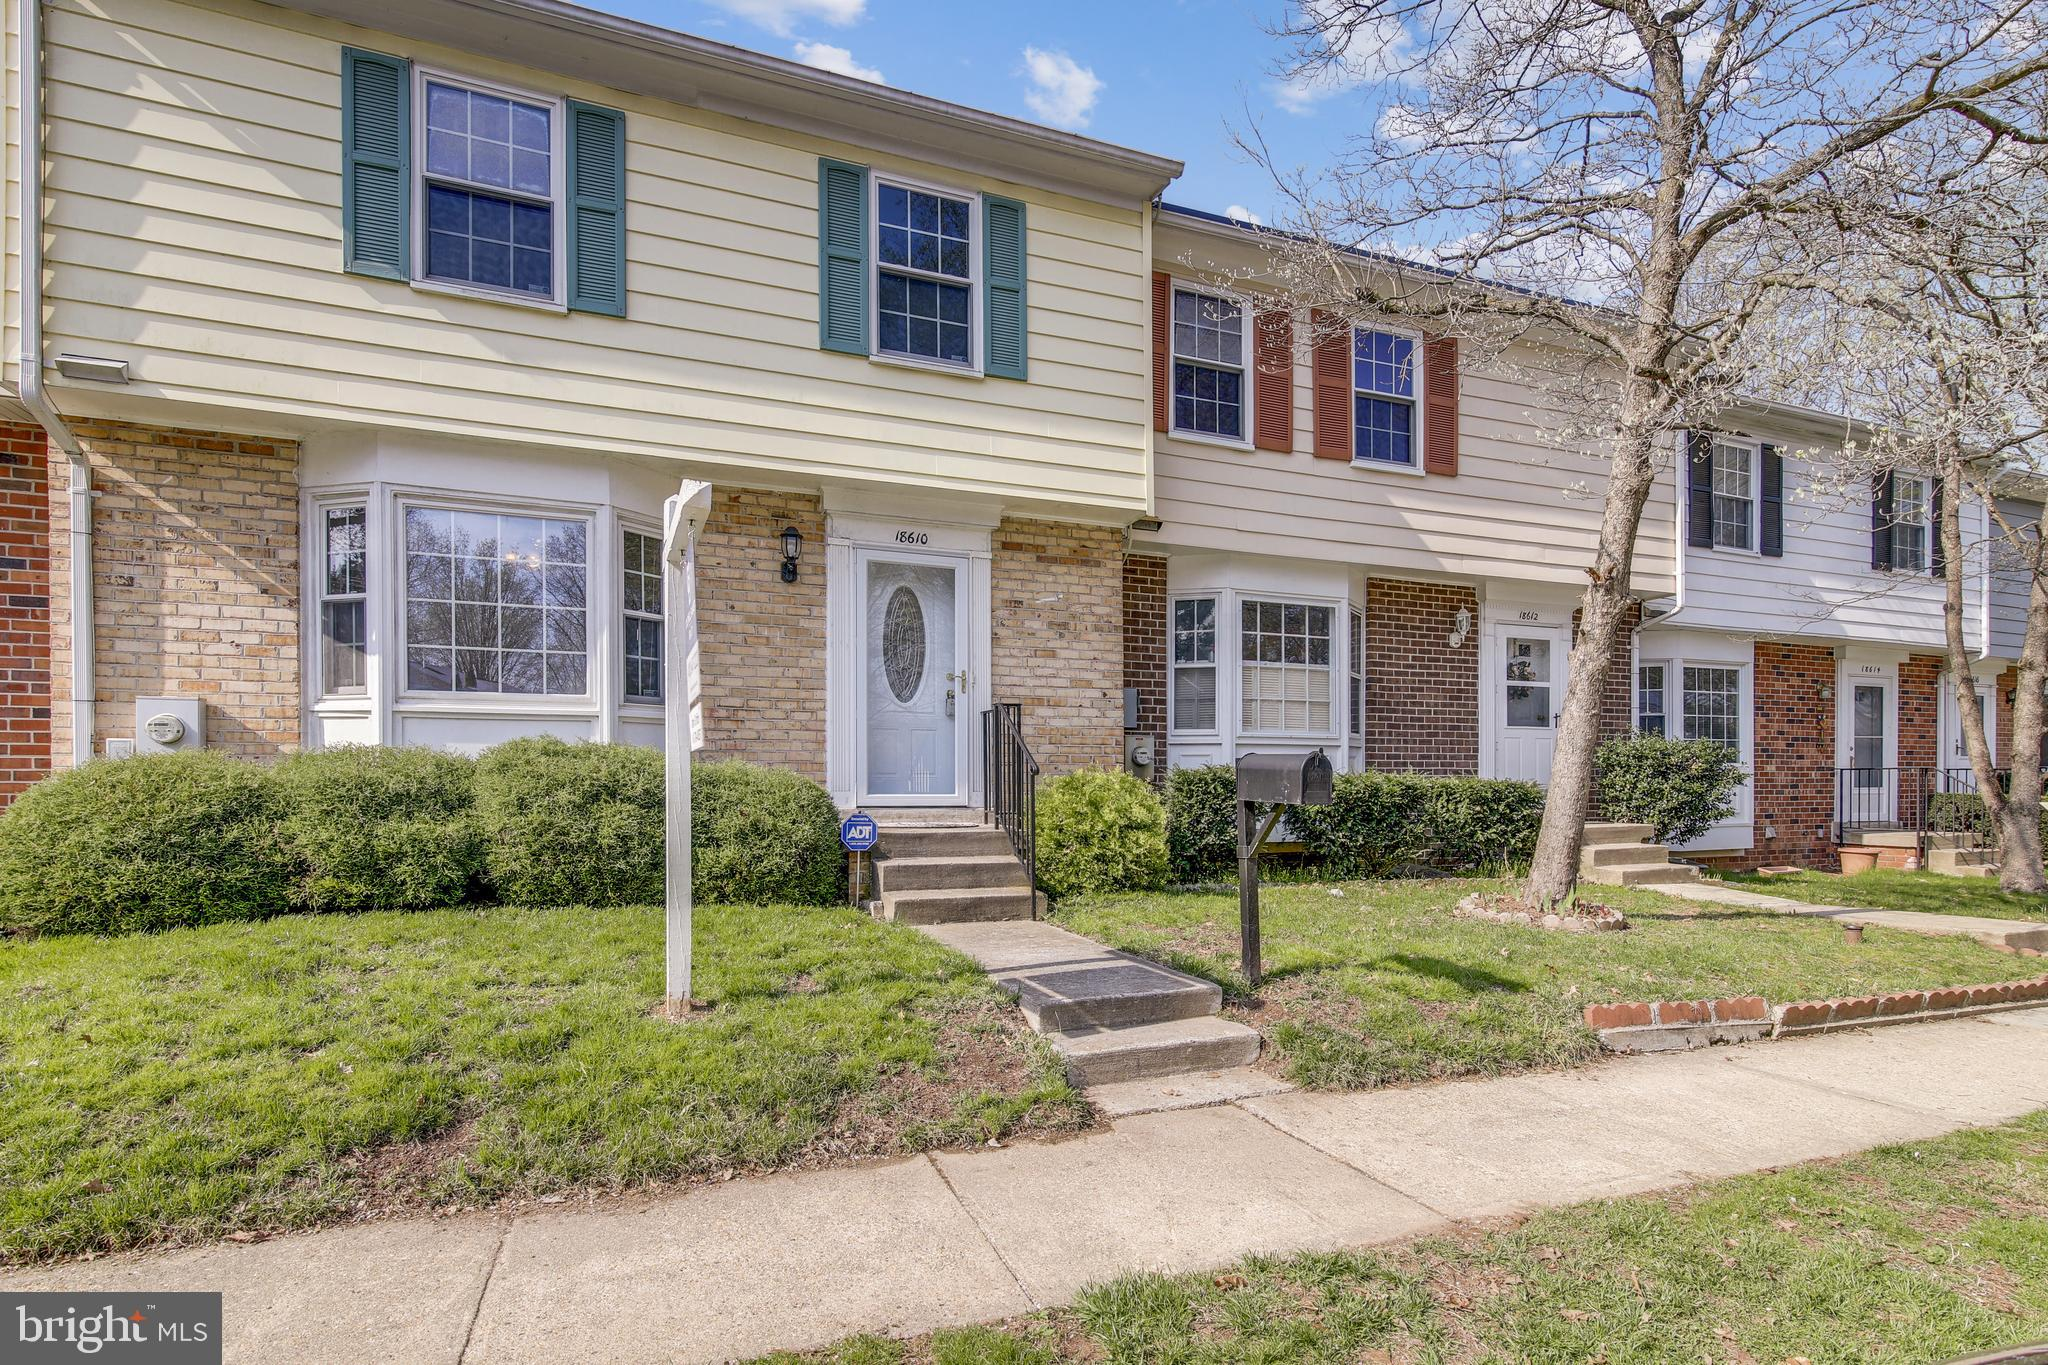 18610 PHOEBE WAY, GAITHERSBURG, Maryland 20879, 3 Bedrooms Bedrooms, ,3 BathroomsBathrooms,Townhouse,For Sale,18610 PHOEBE WAY,MDMC751234